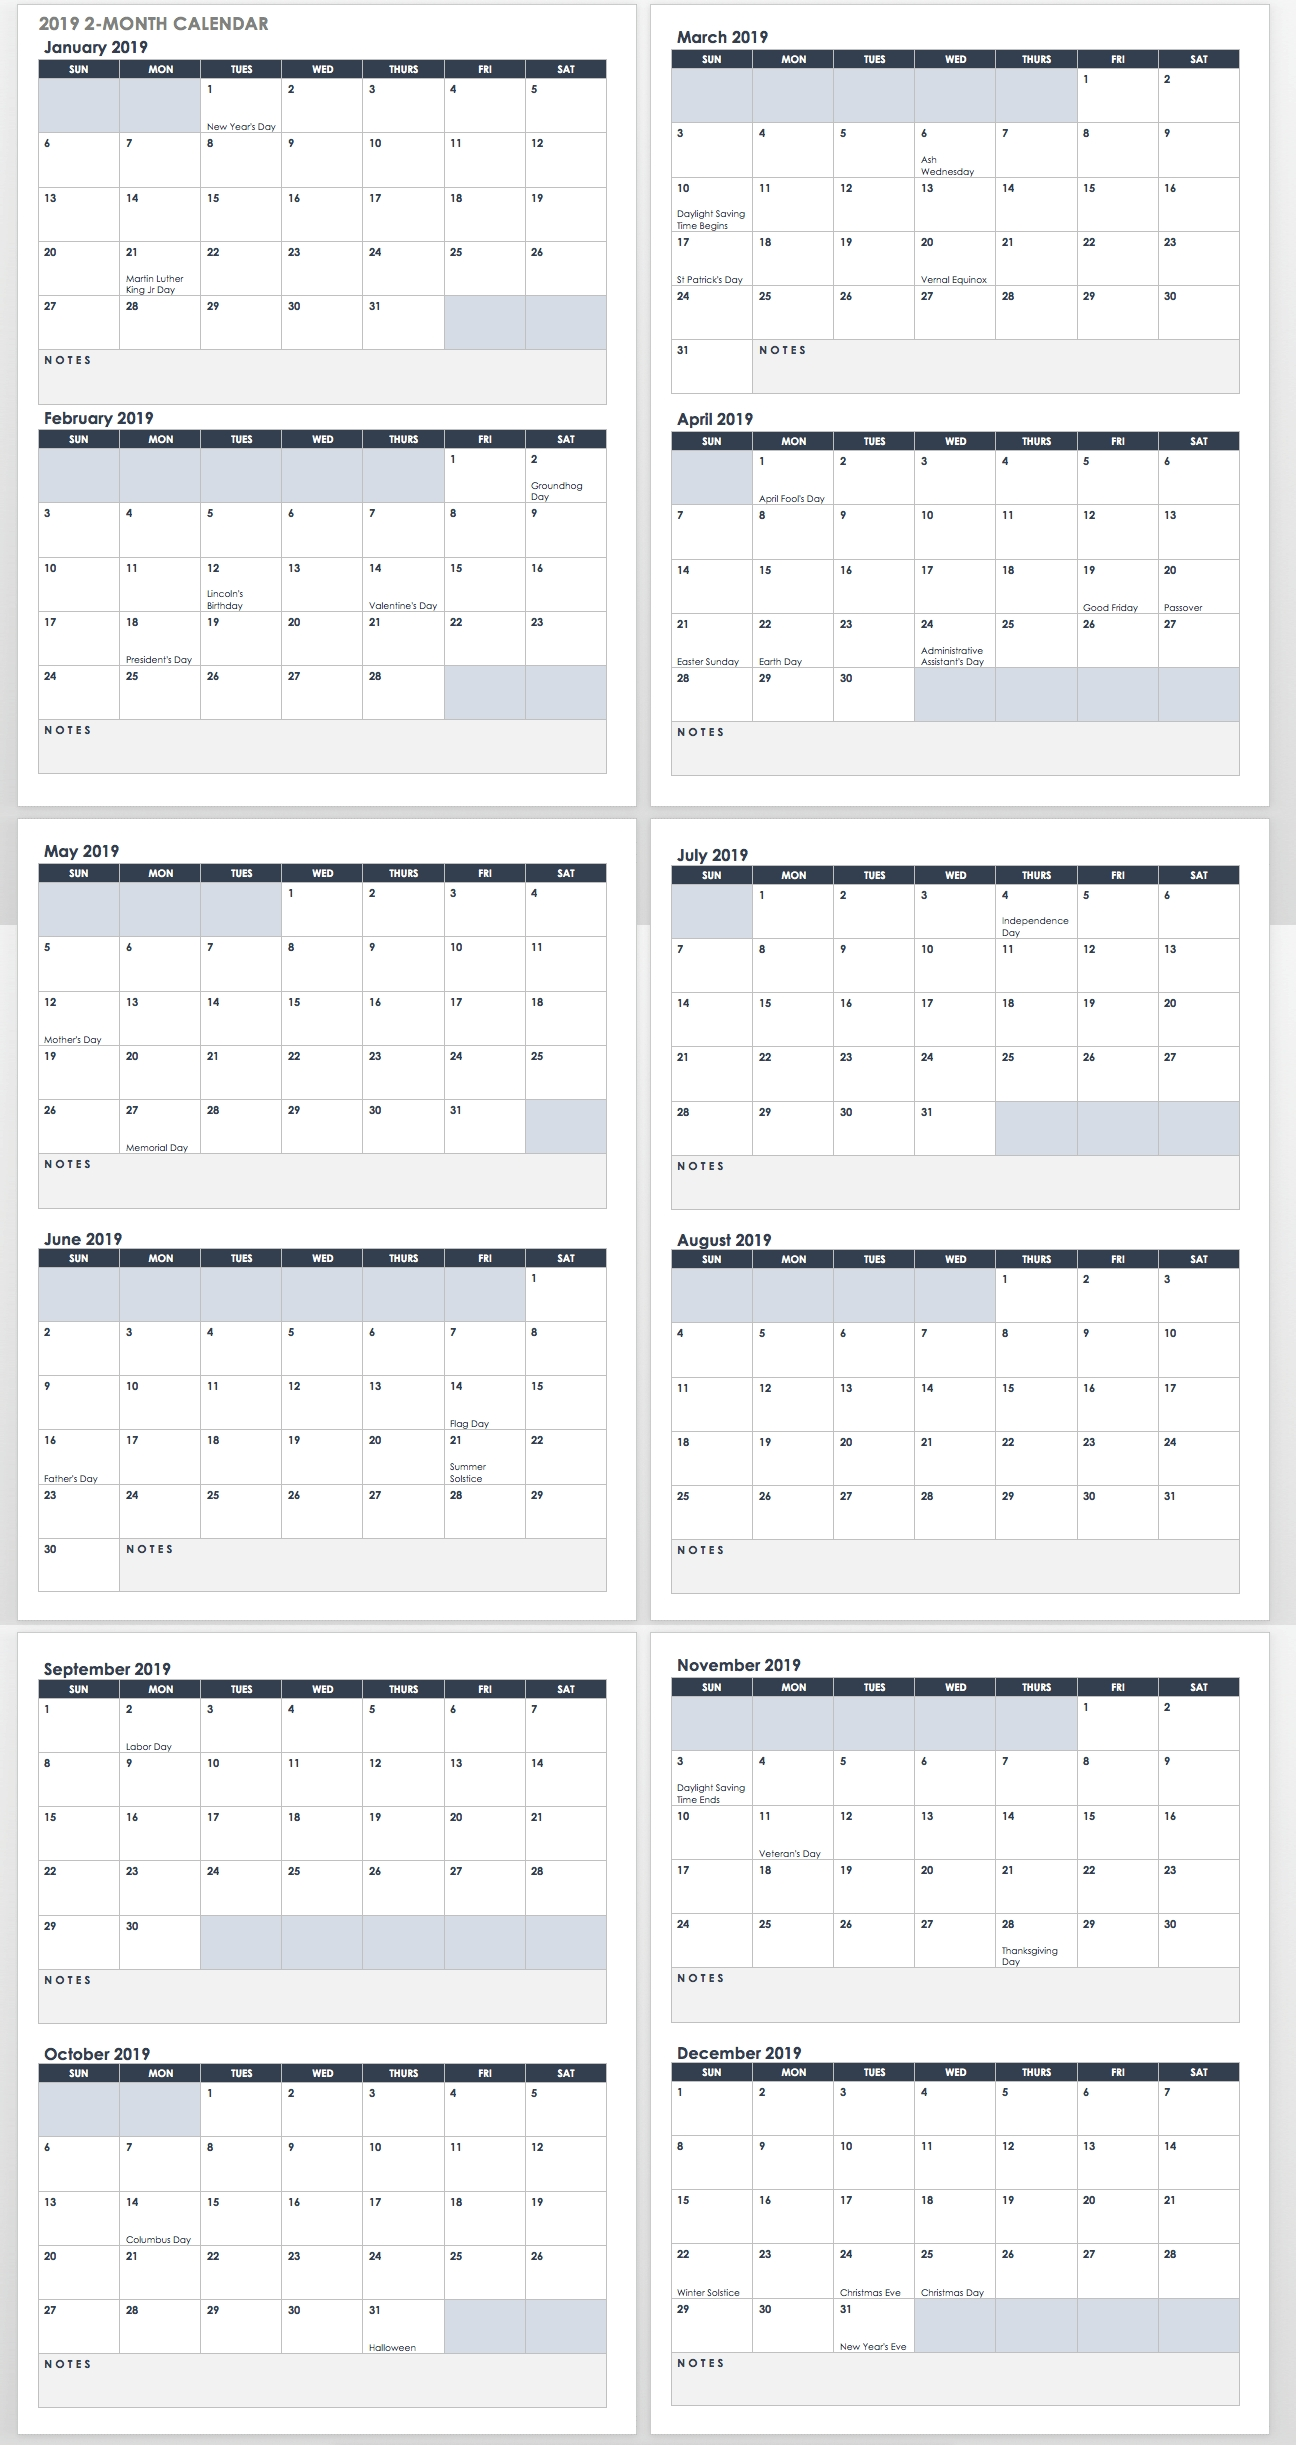 15 Free Monthly Calendar Templates | Smartsheet within 2019 2020 Box Calender